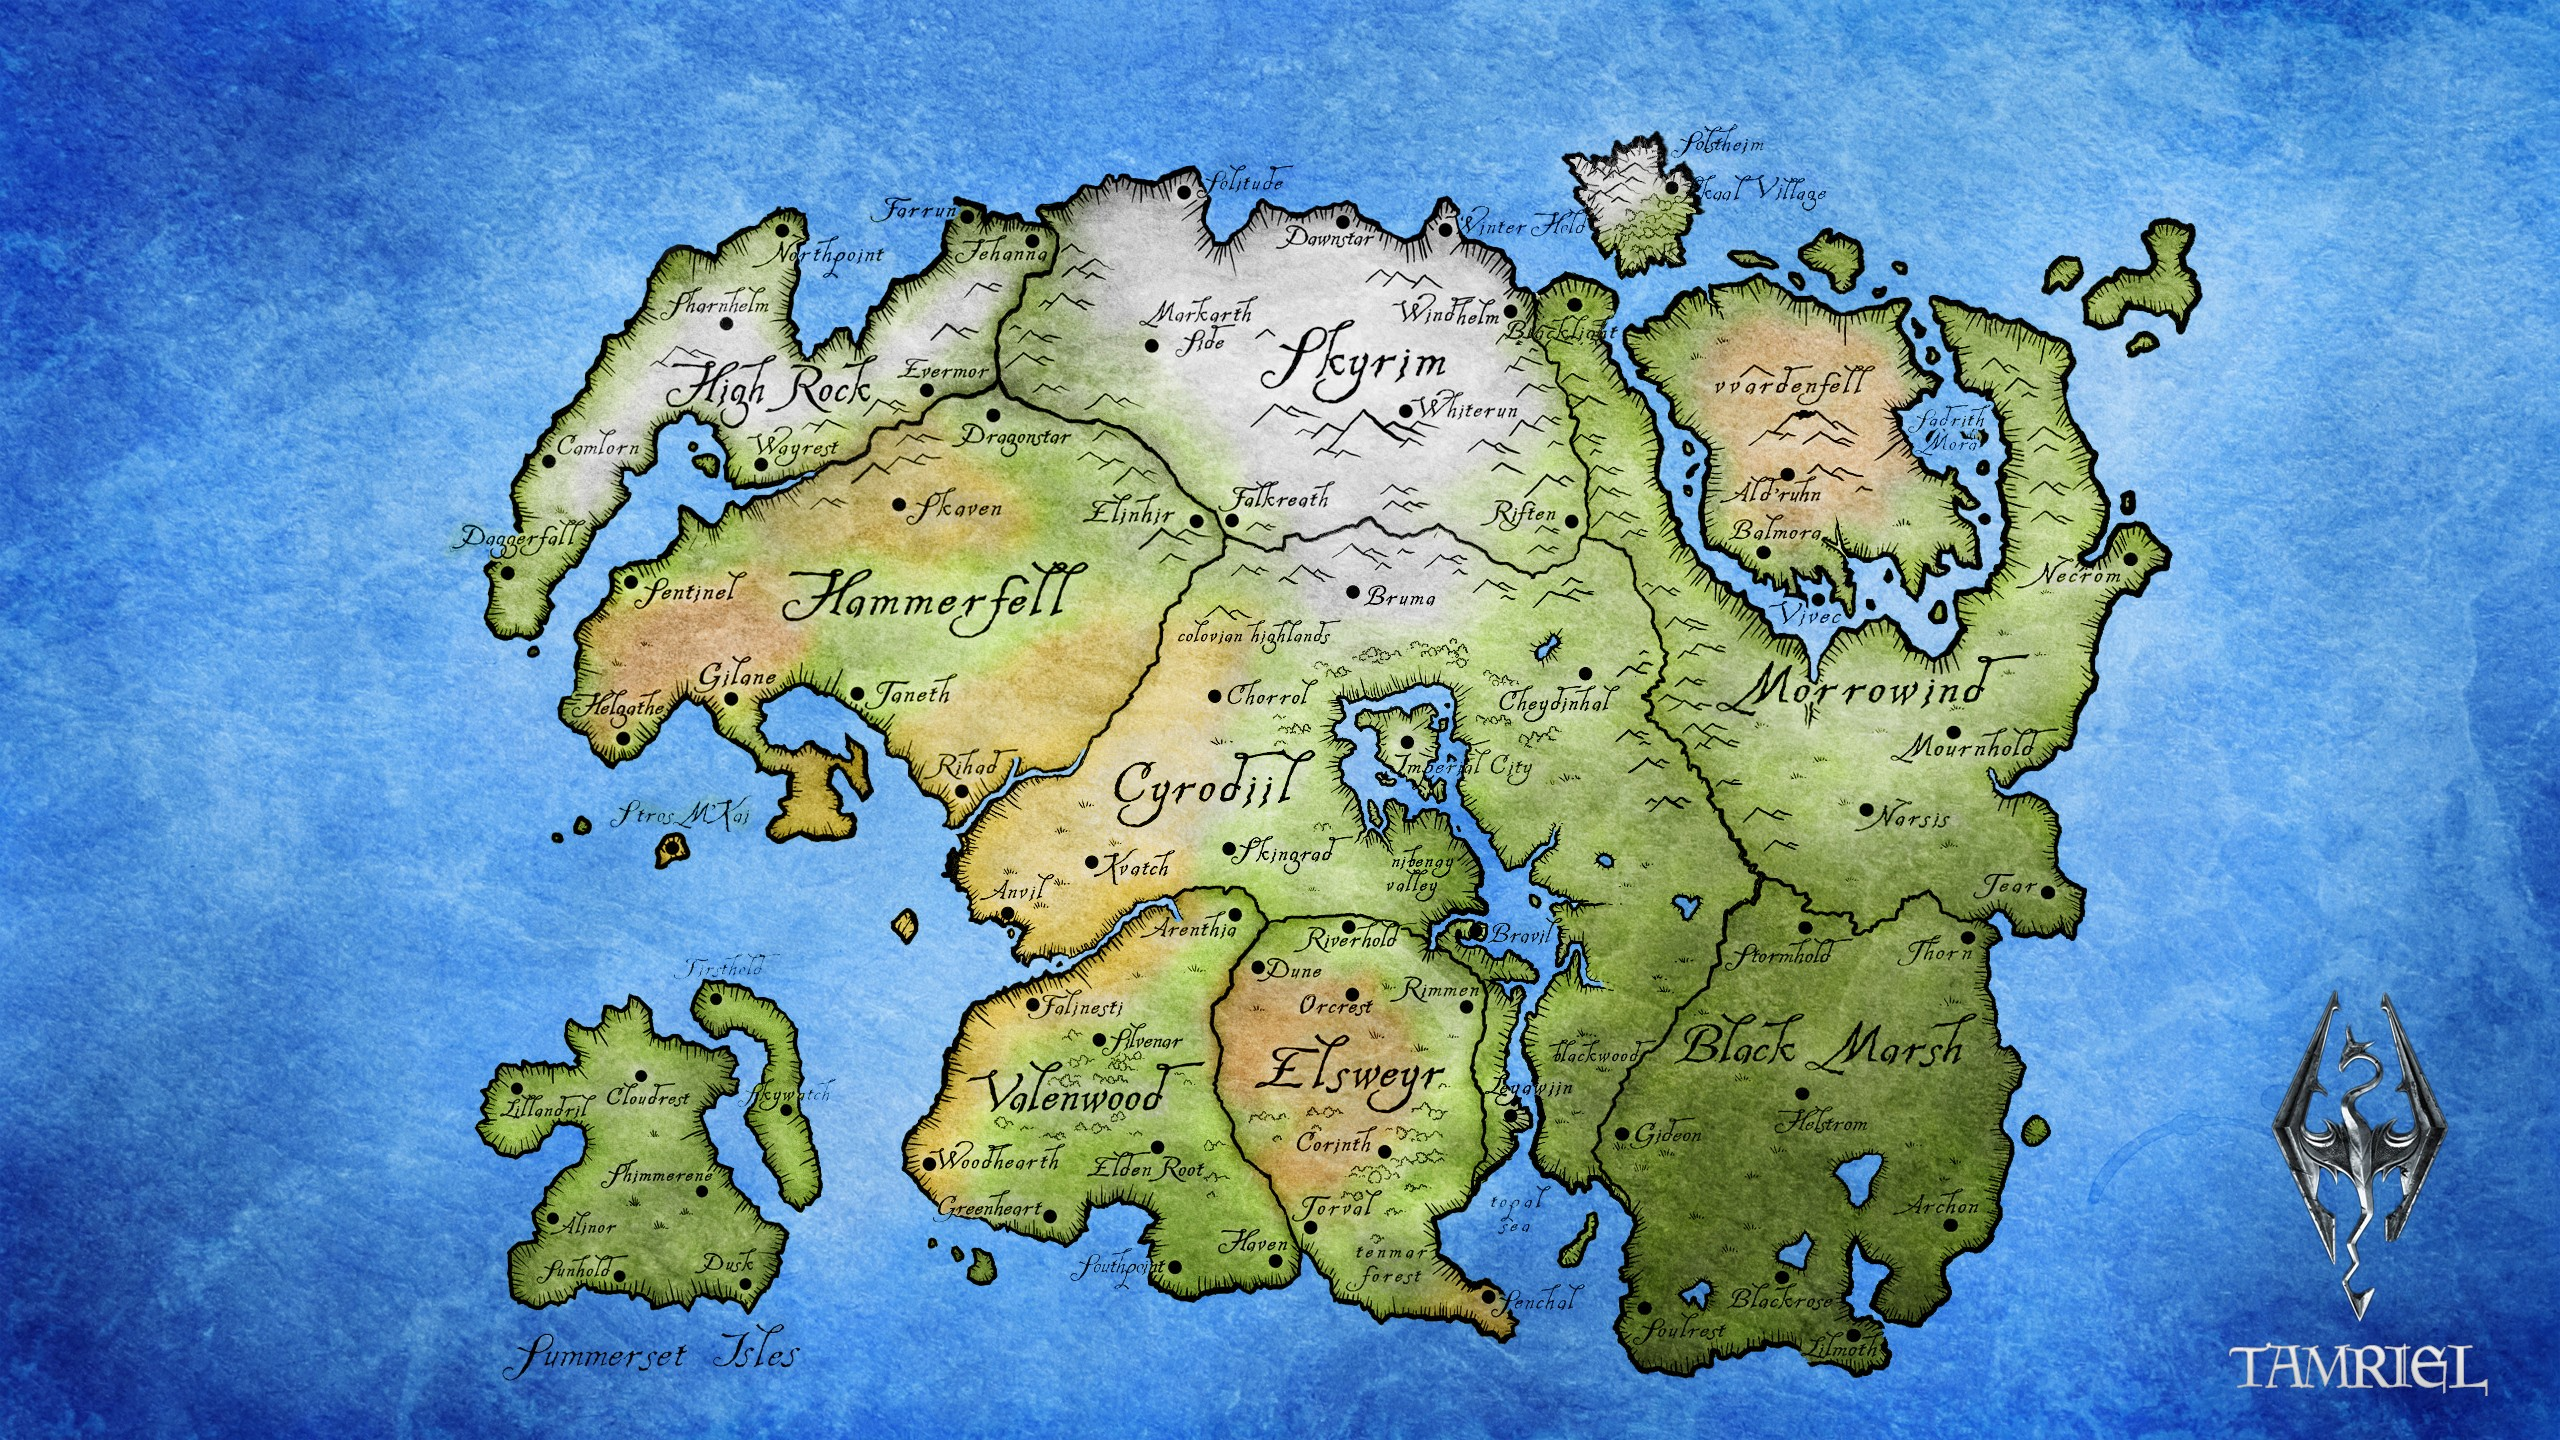 Tamriel Map The Elder Scrolls Wallpapers HD Desktop and Mobile 2560x1440